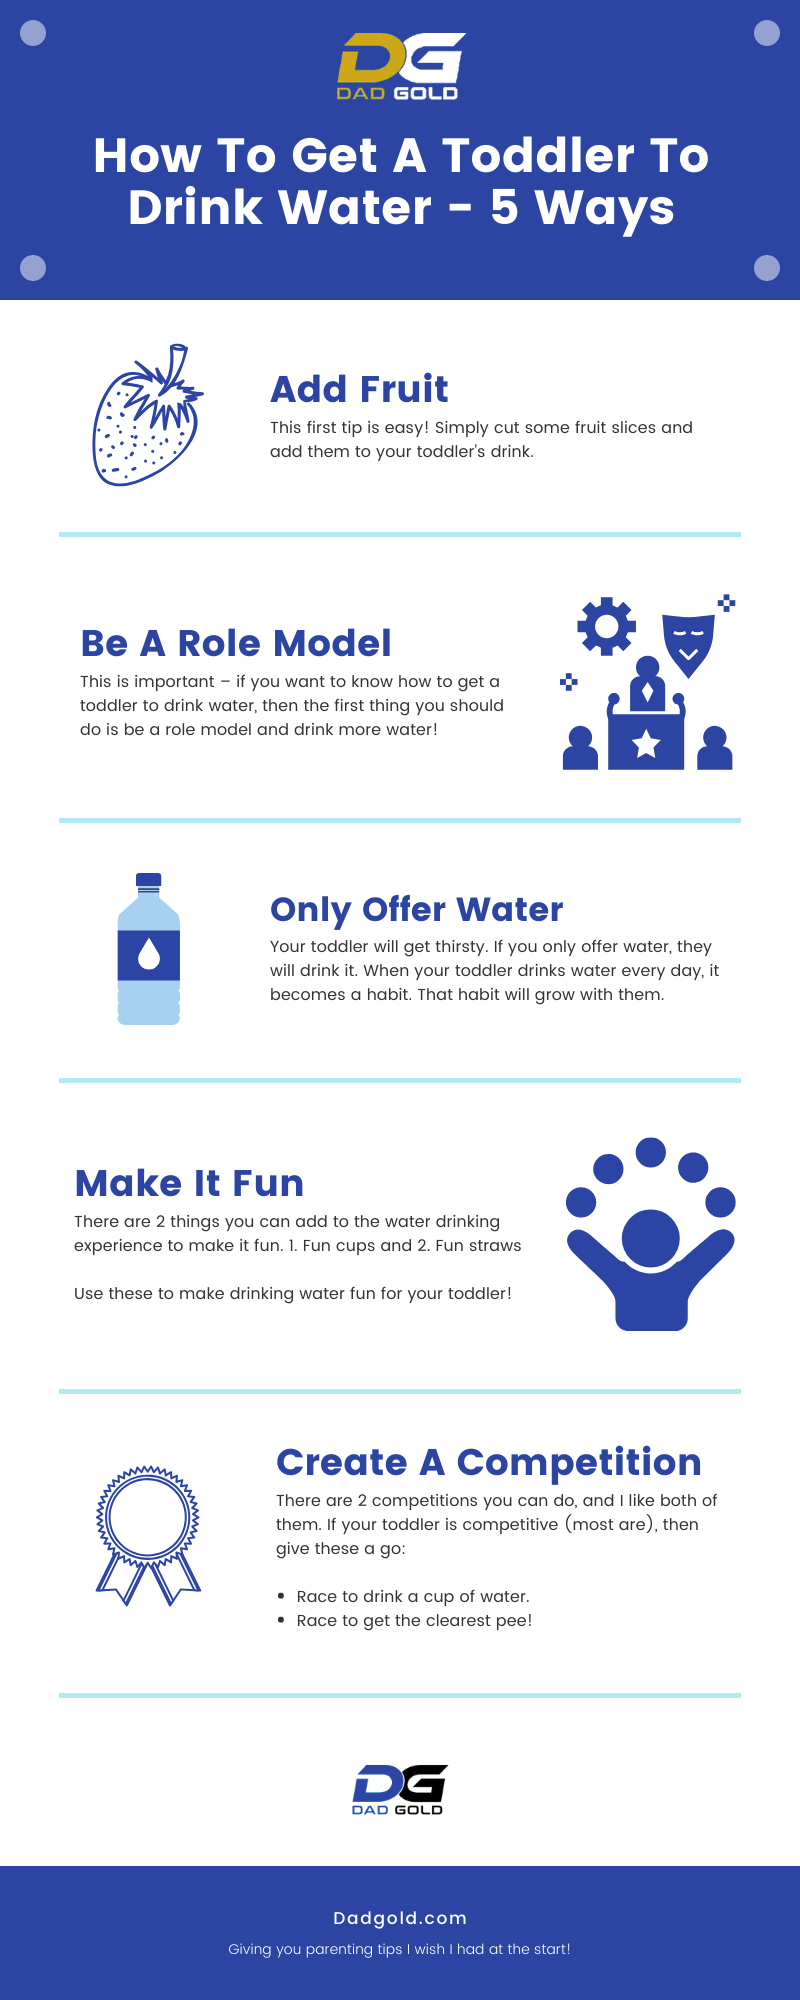 How To Get A Toddler To Drink Water Infographic